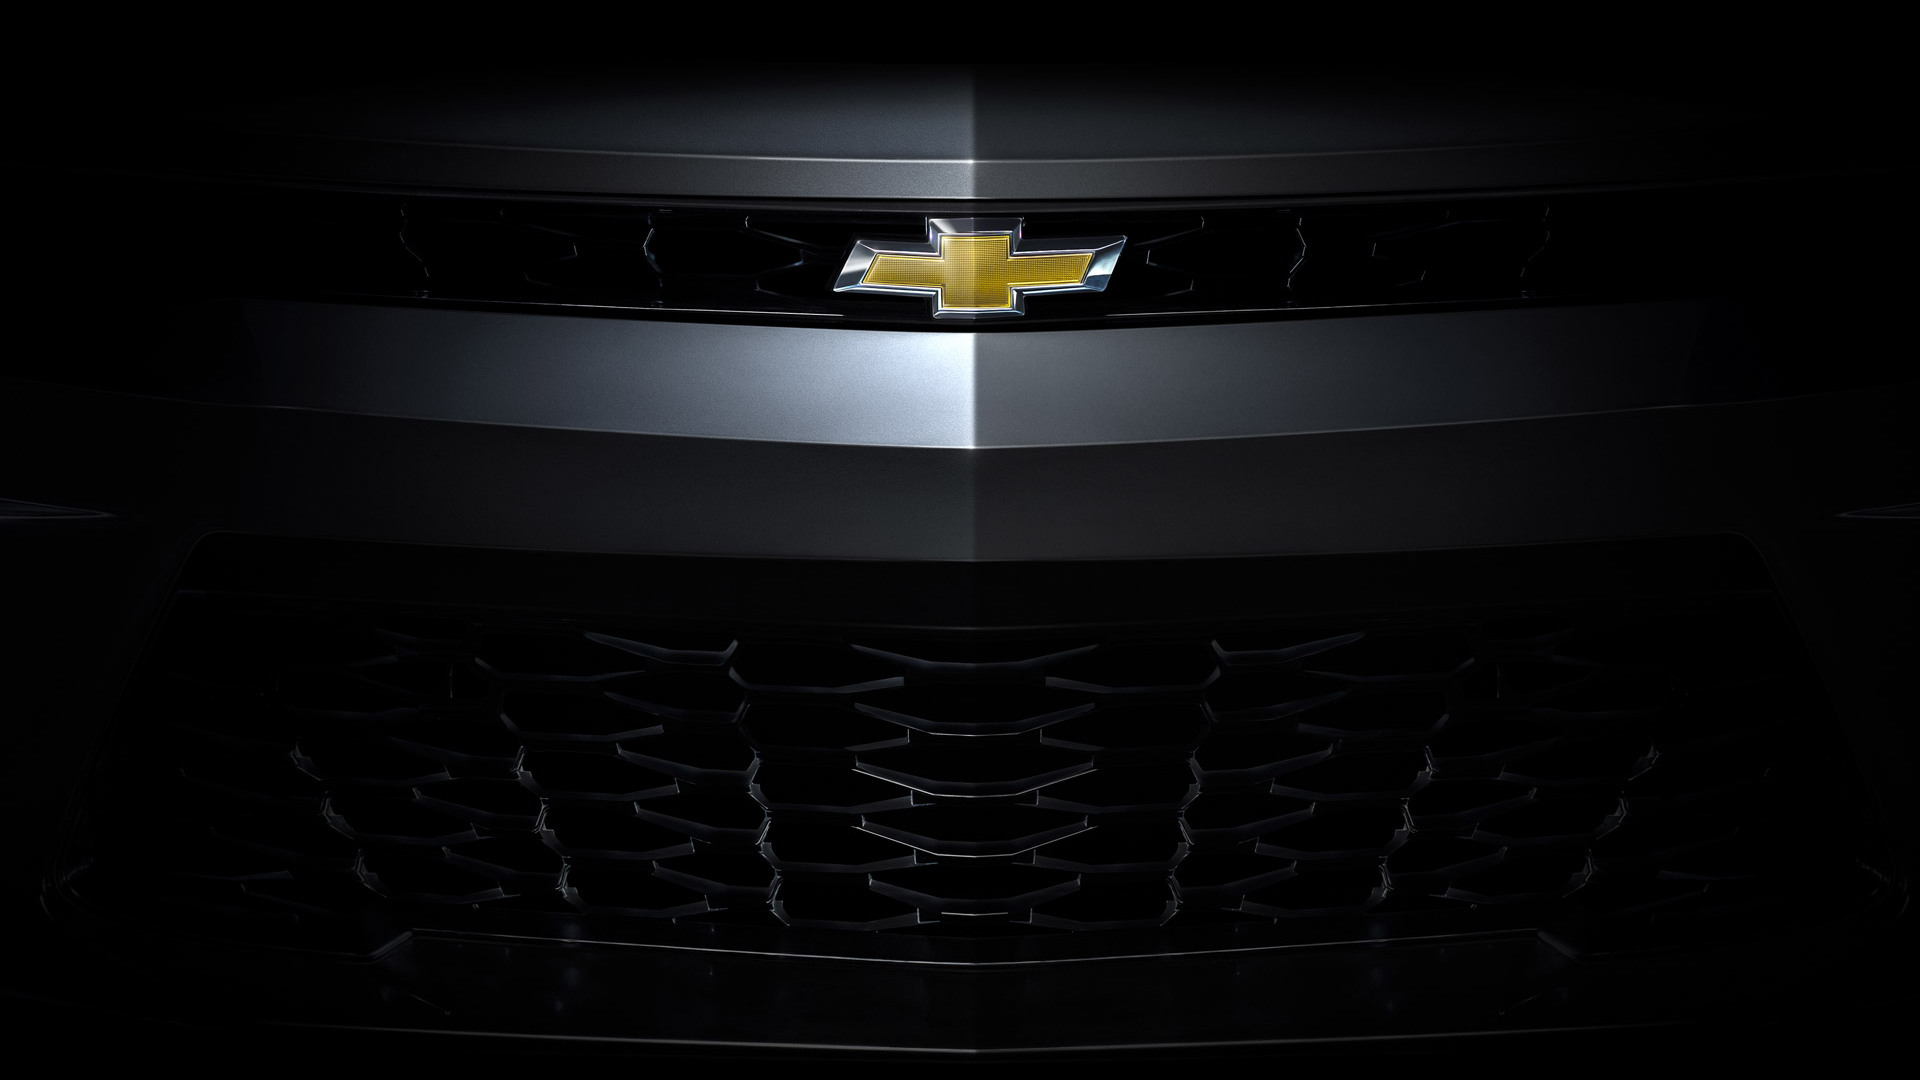 2016 Chevrolet Camaro's aerodynamic features